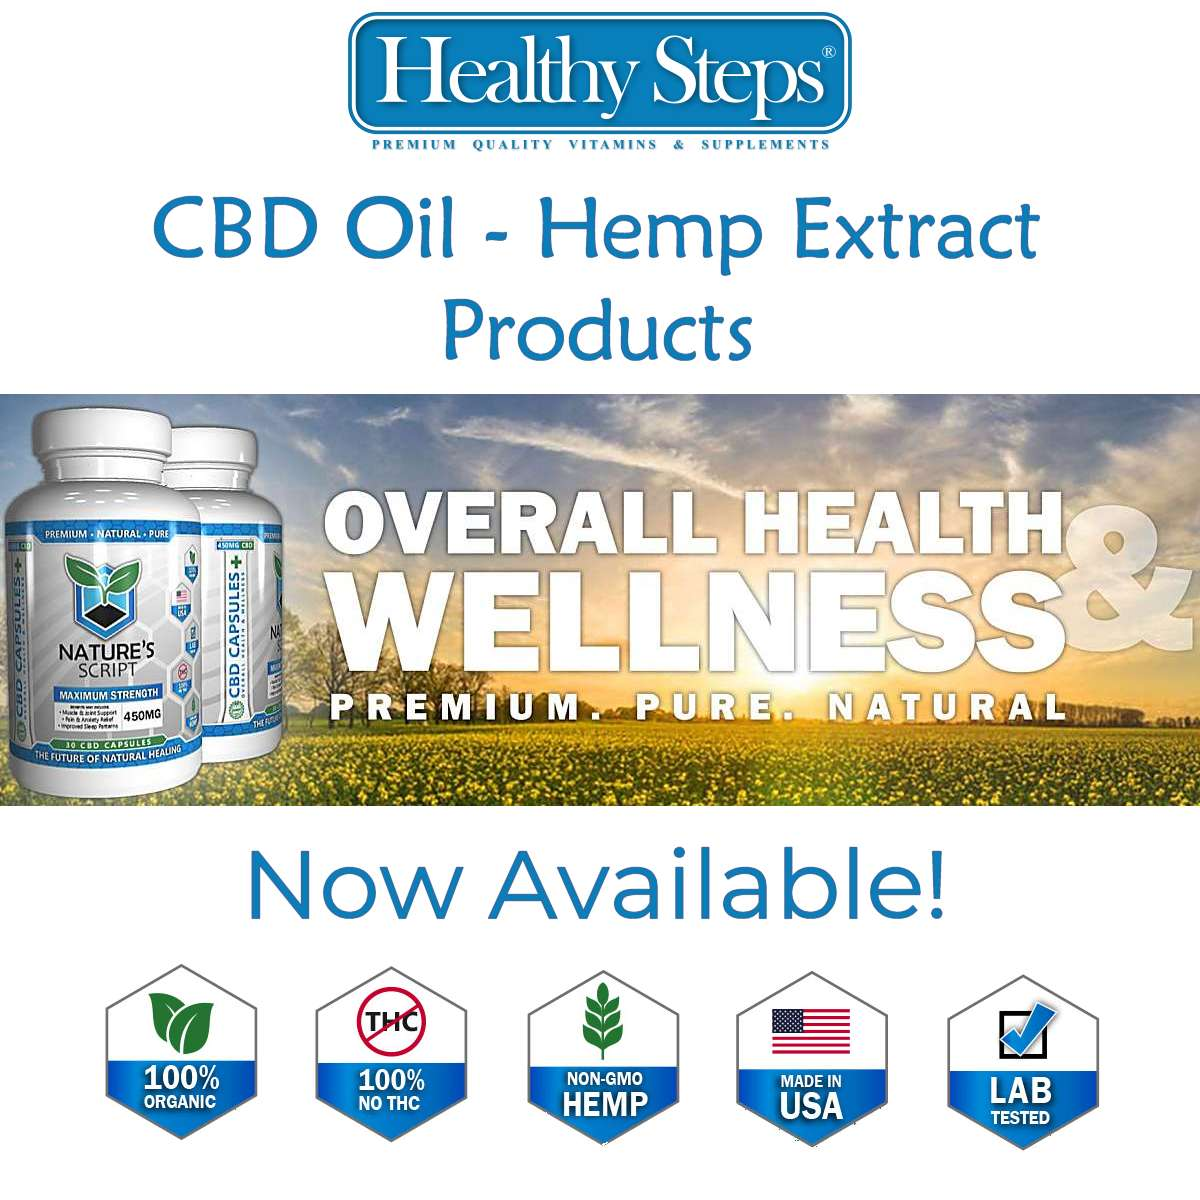 CDB OIL PRODUCTS Now Available!